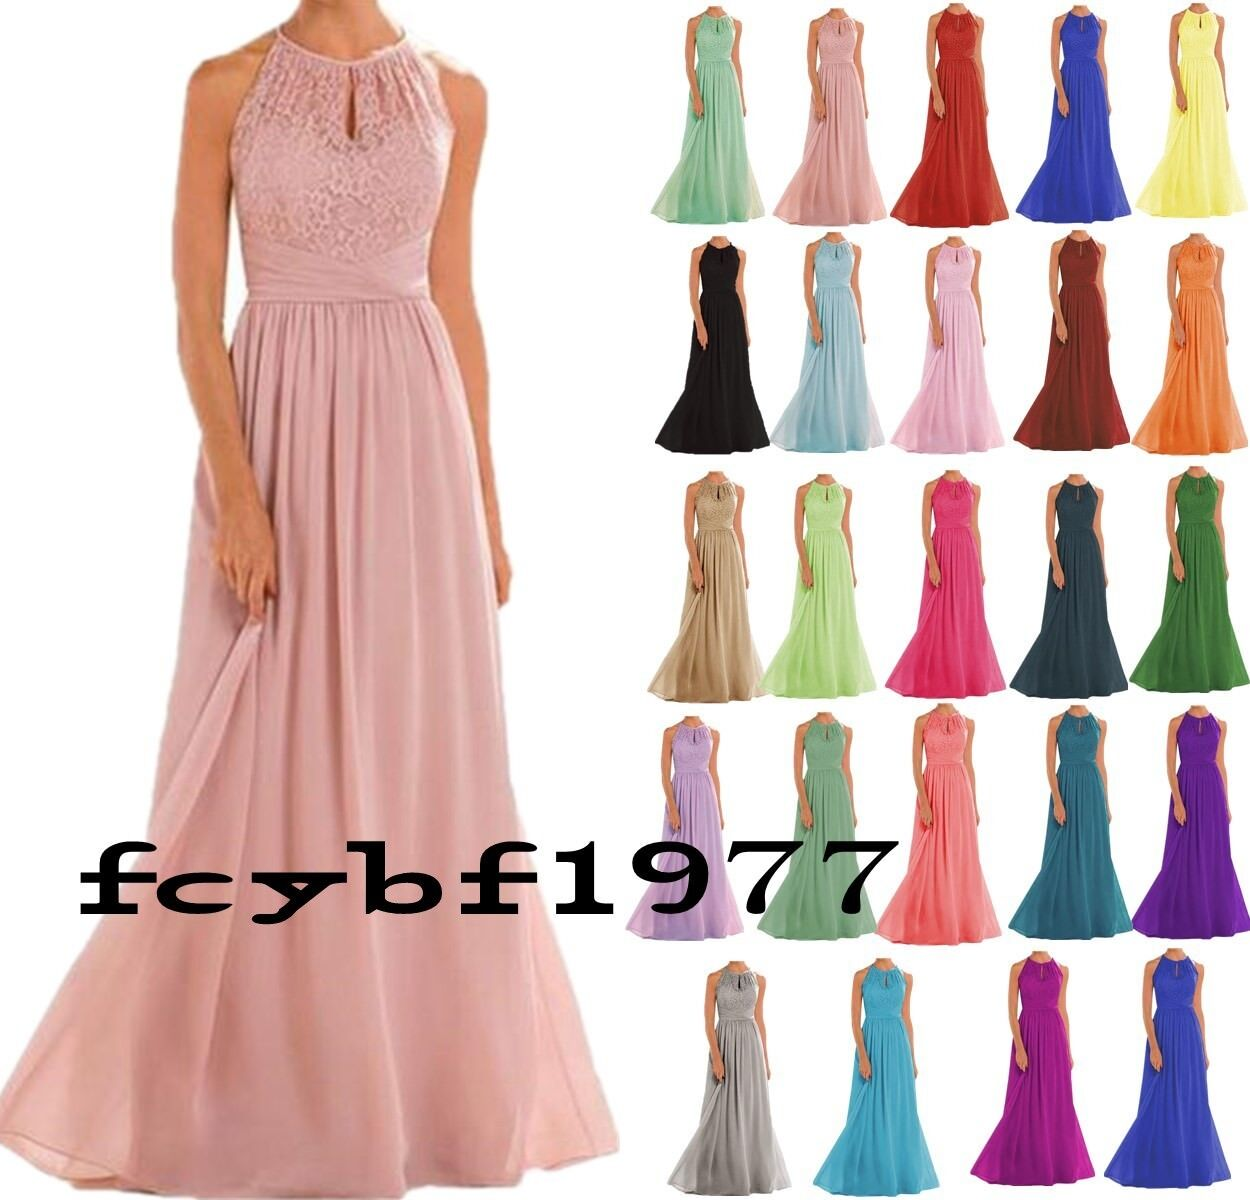 0ff17503b8cf Sage Green Bridesmaid Dresses Ebay